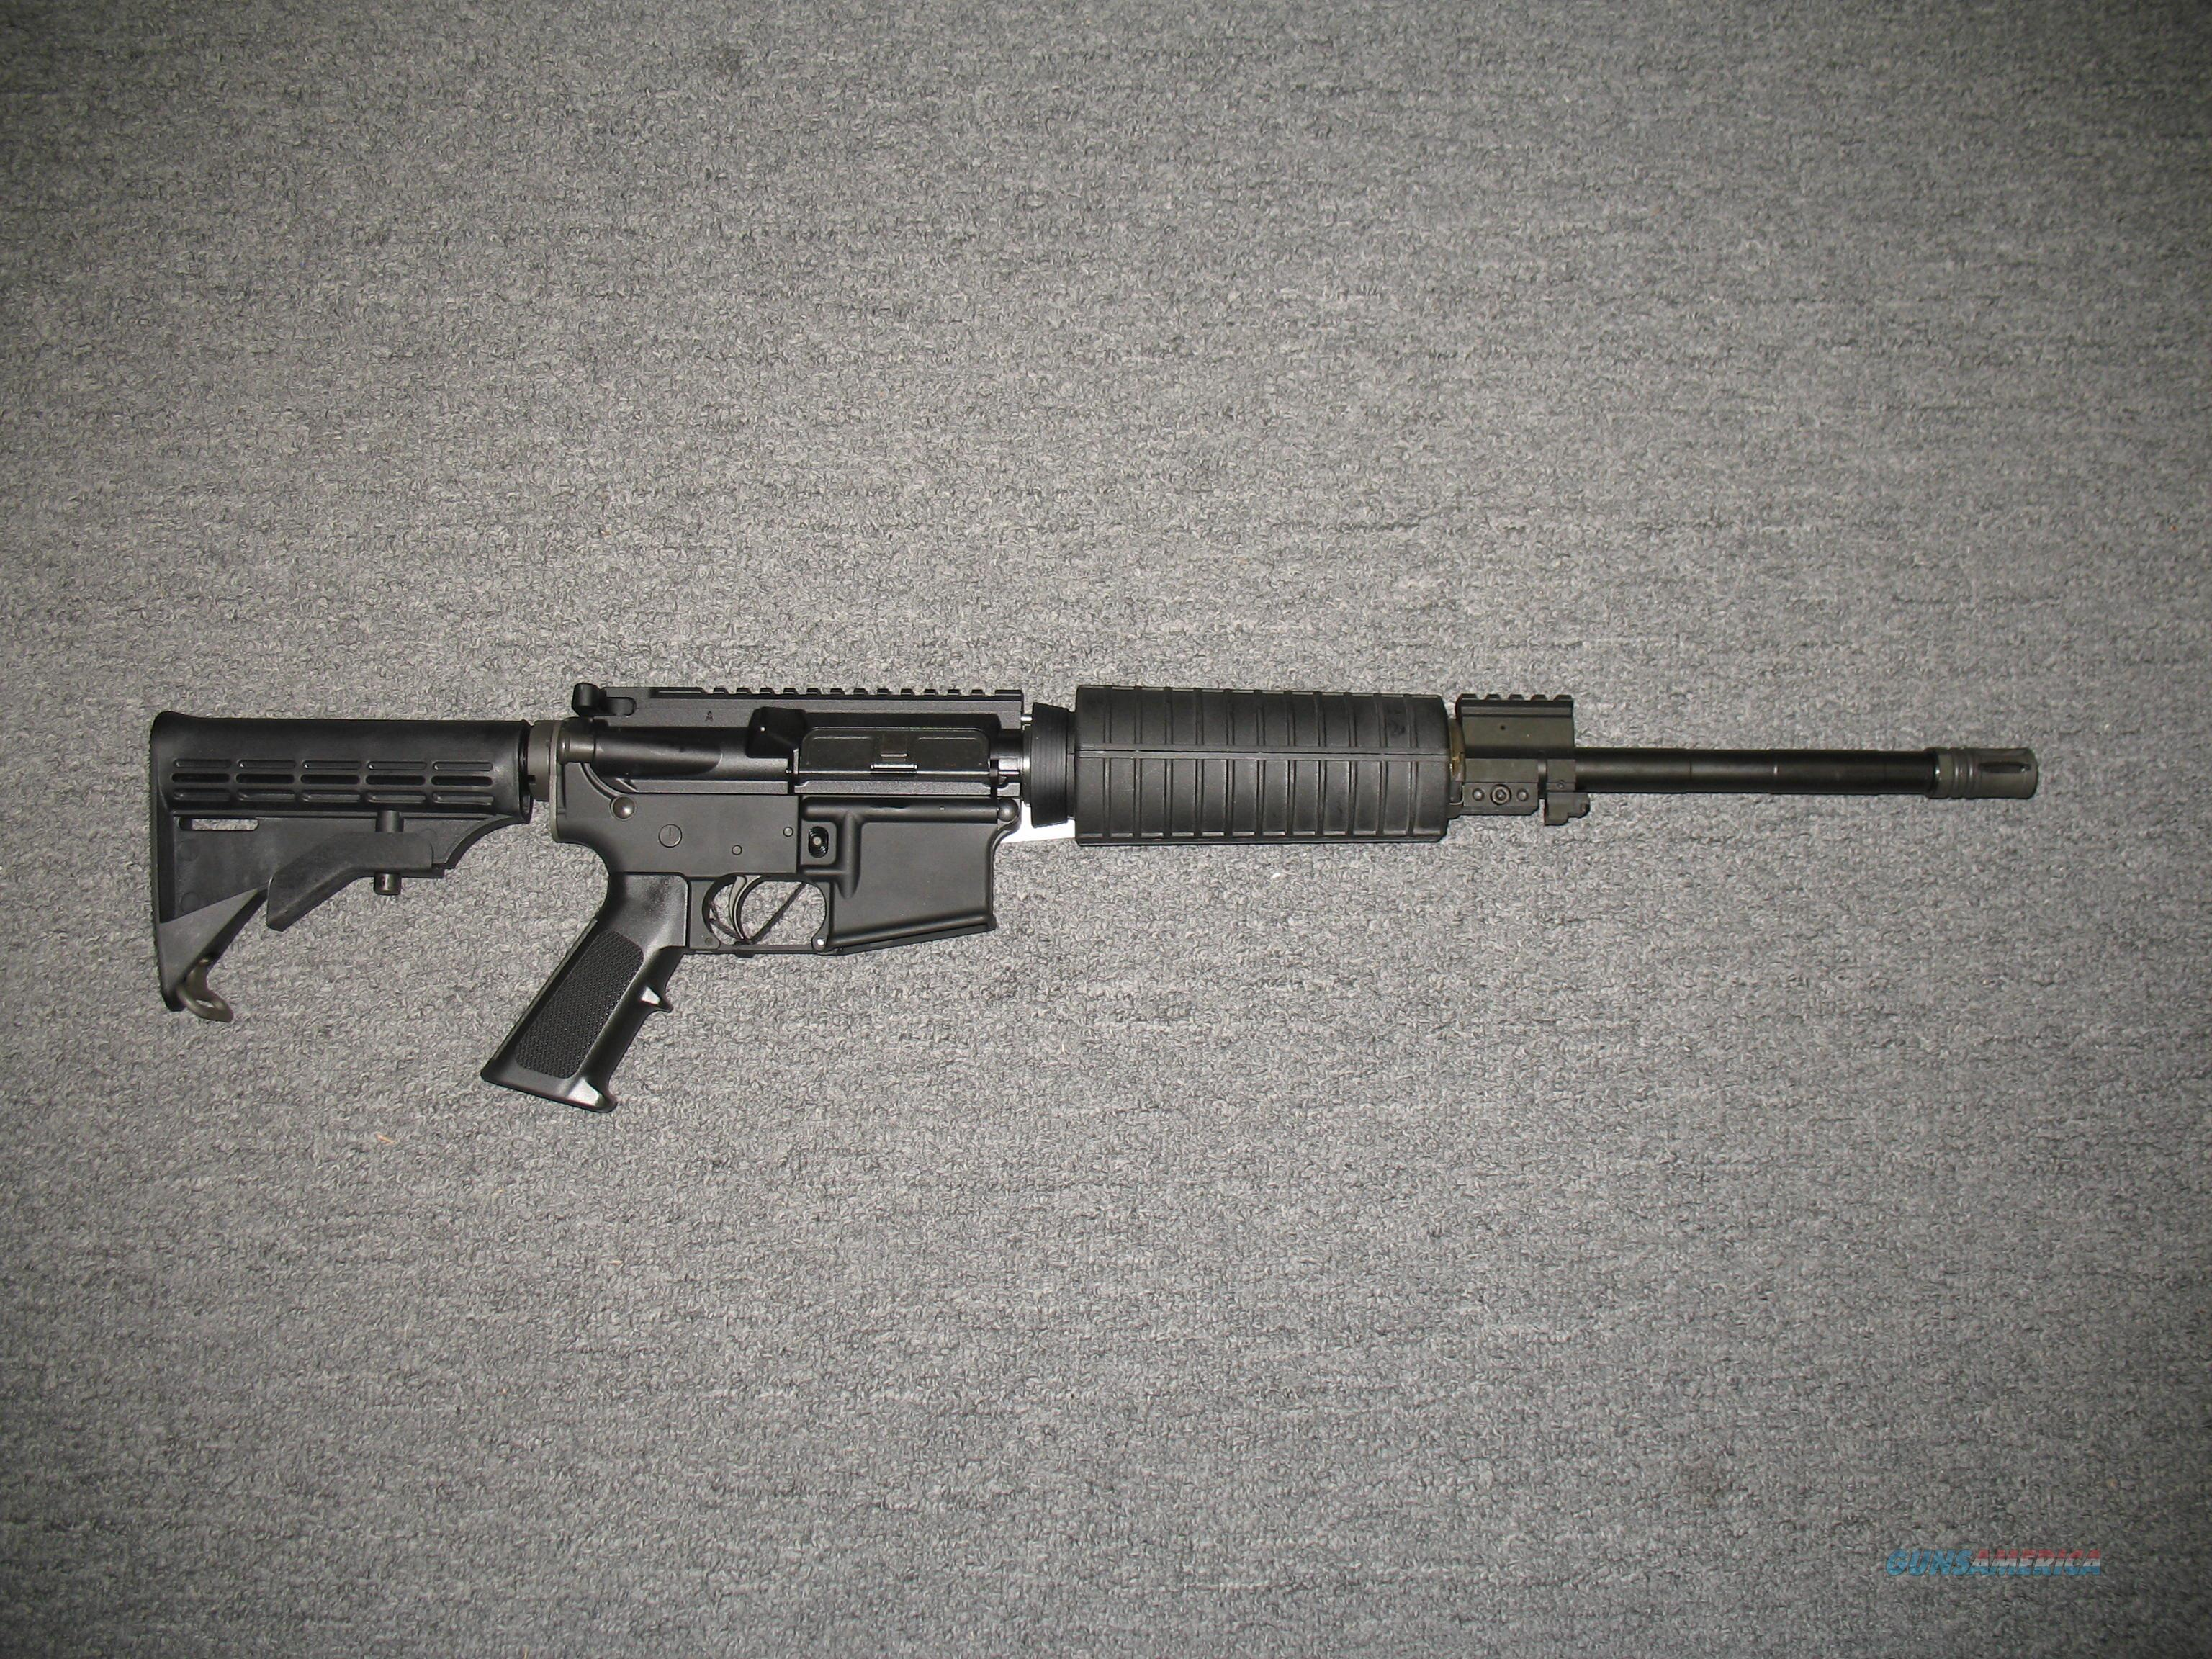 CMMG MK-4 .300blk  Guns > Rifles > AR-15 Rifles - Small Manufacturers > Complete Rifle